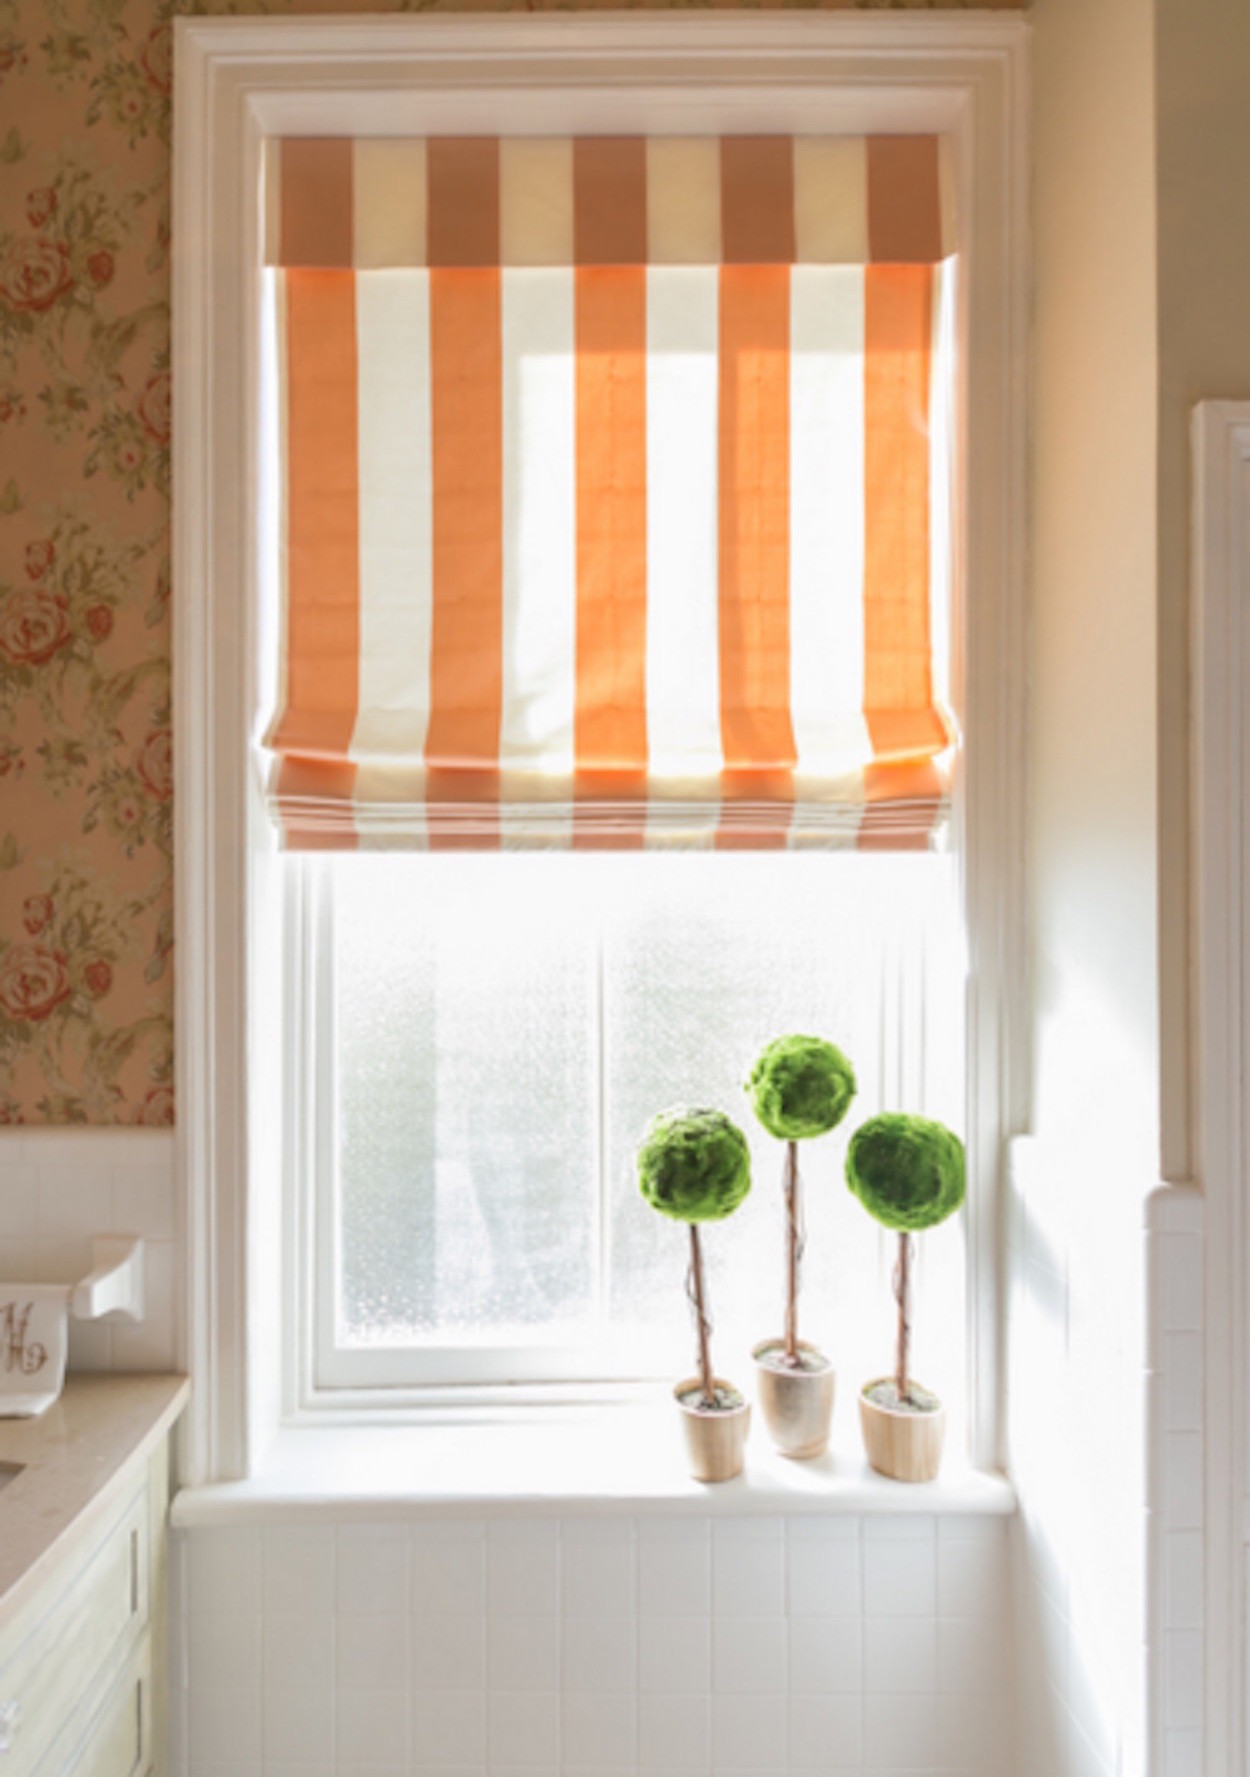 7 different bathroom window treatments you might not have thought of martha stewart - Bathroom Window Treatments